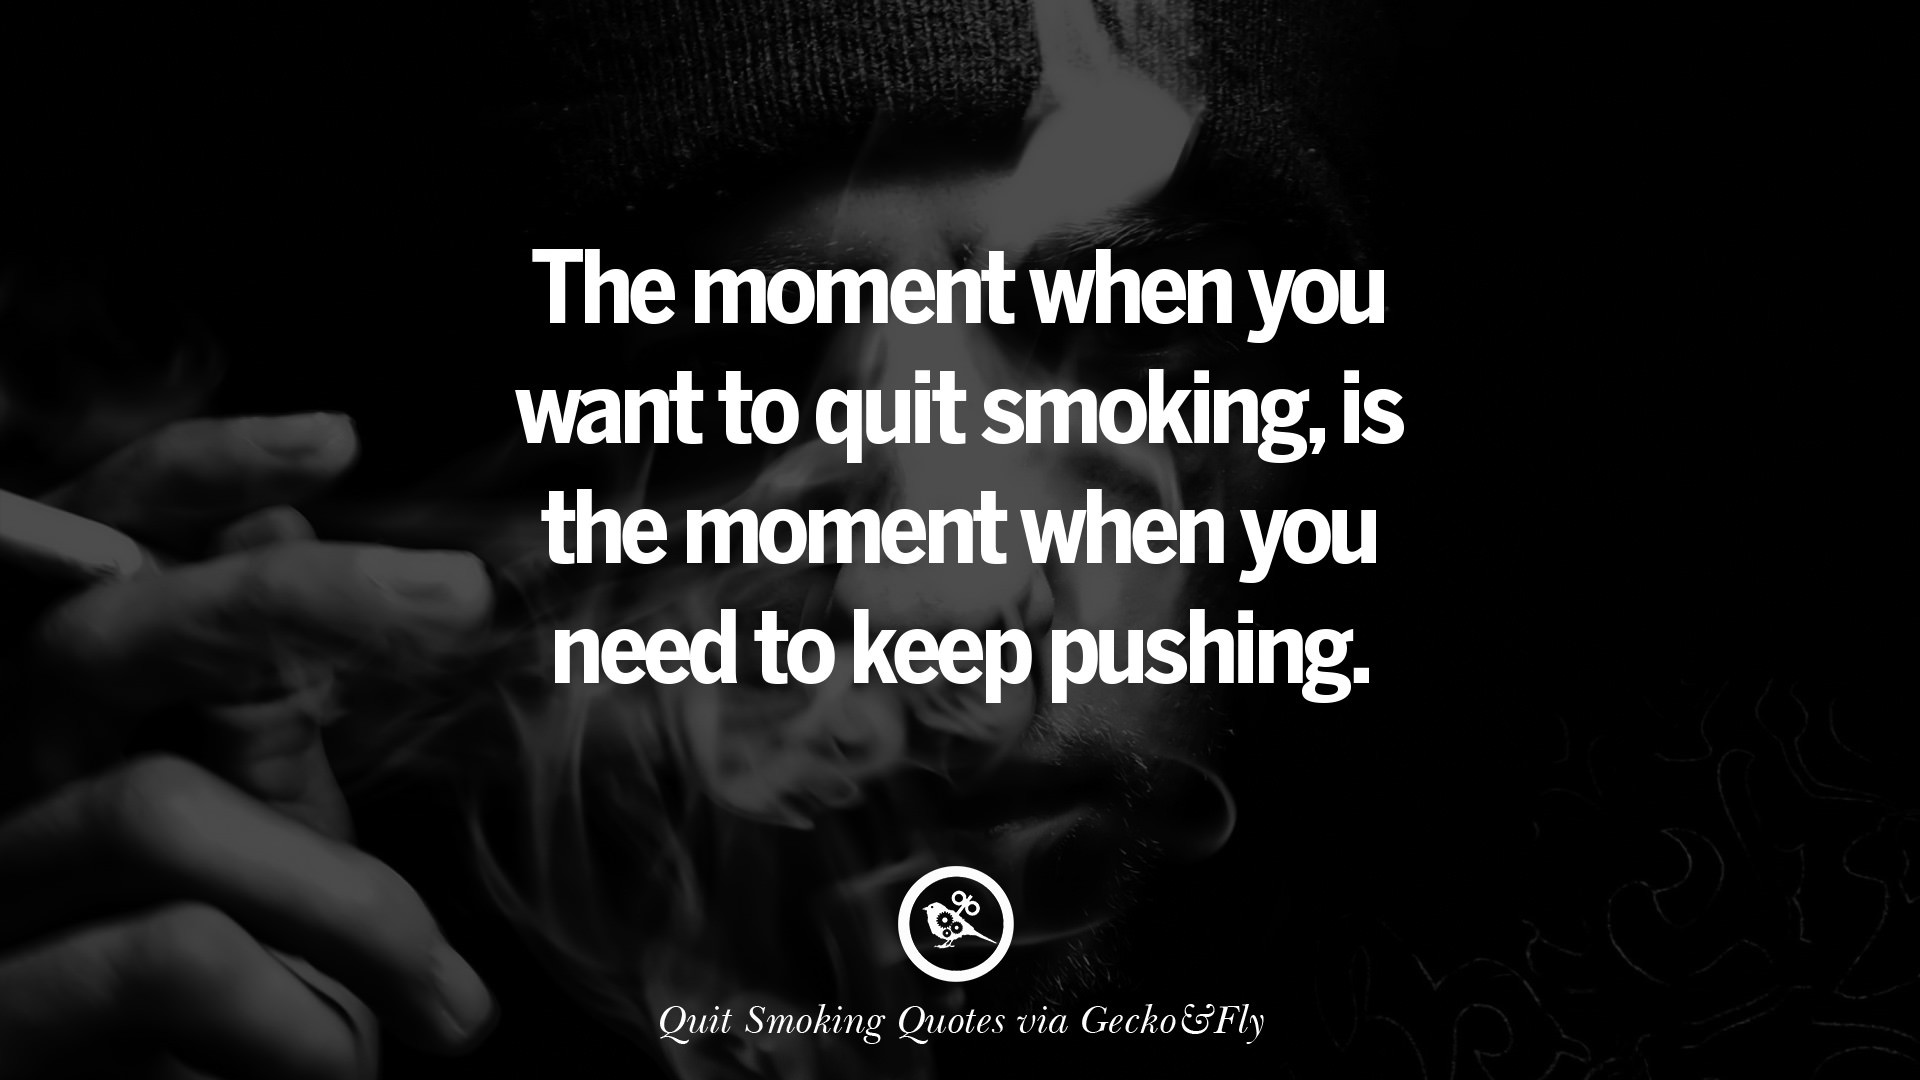 1920x1080 The moment when you want to quit smoking, is the moment when you need to  keep pushing.